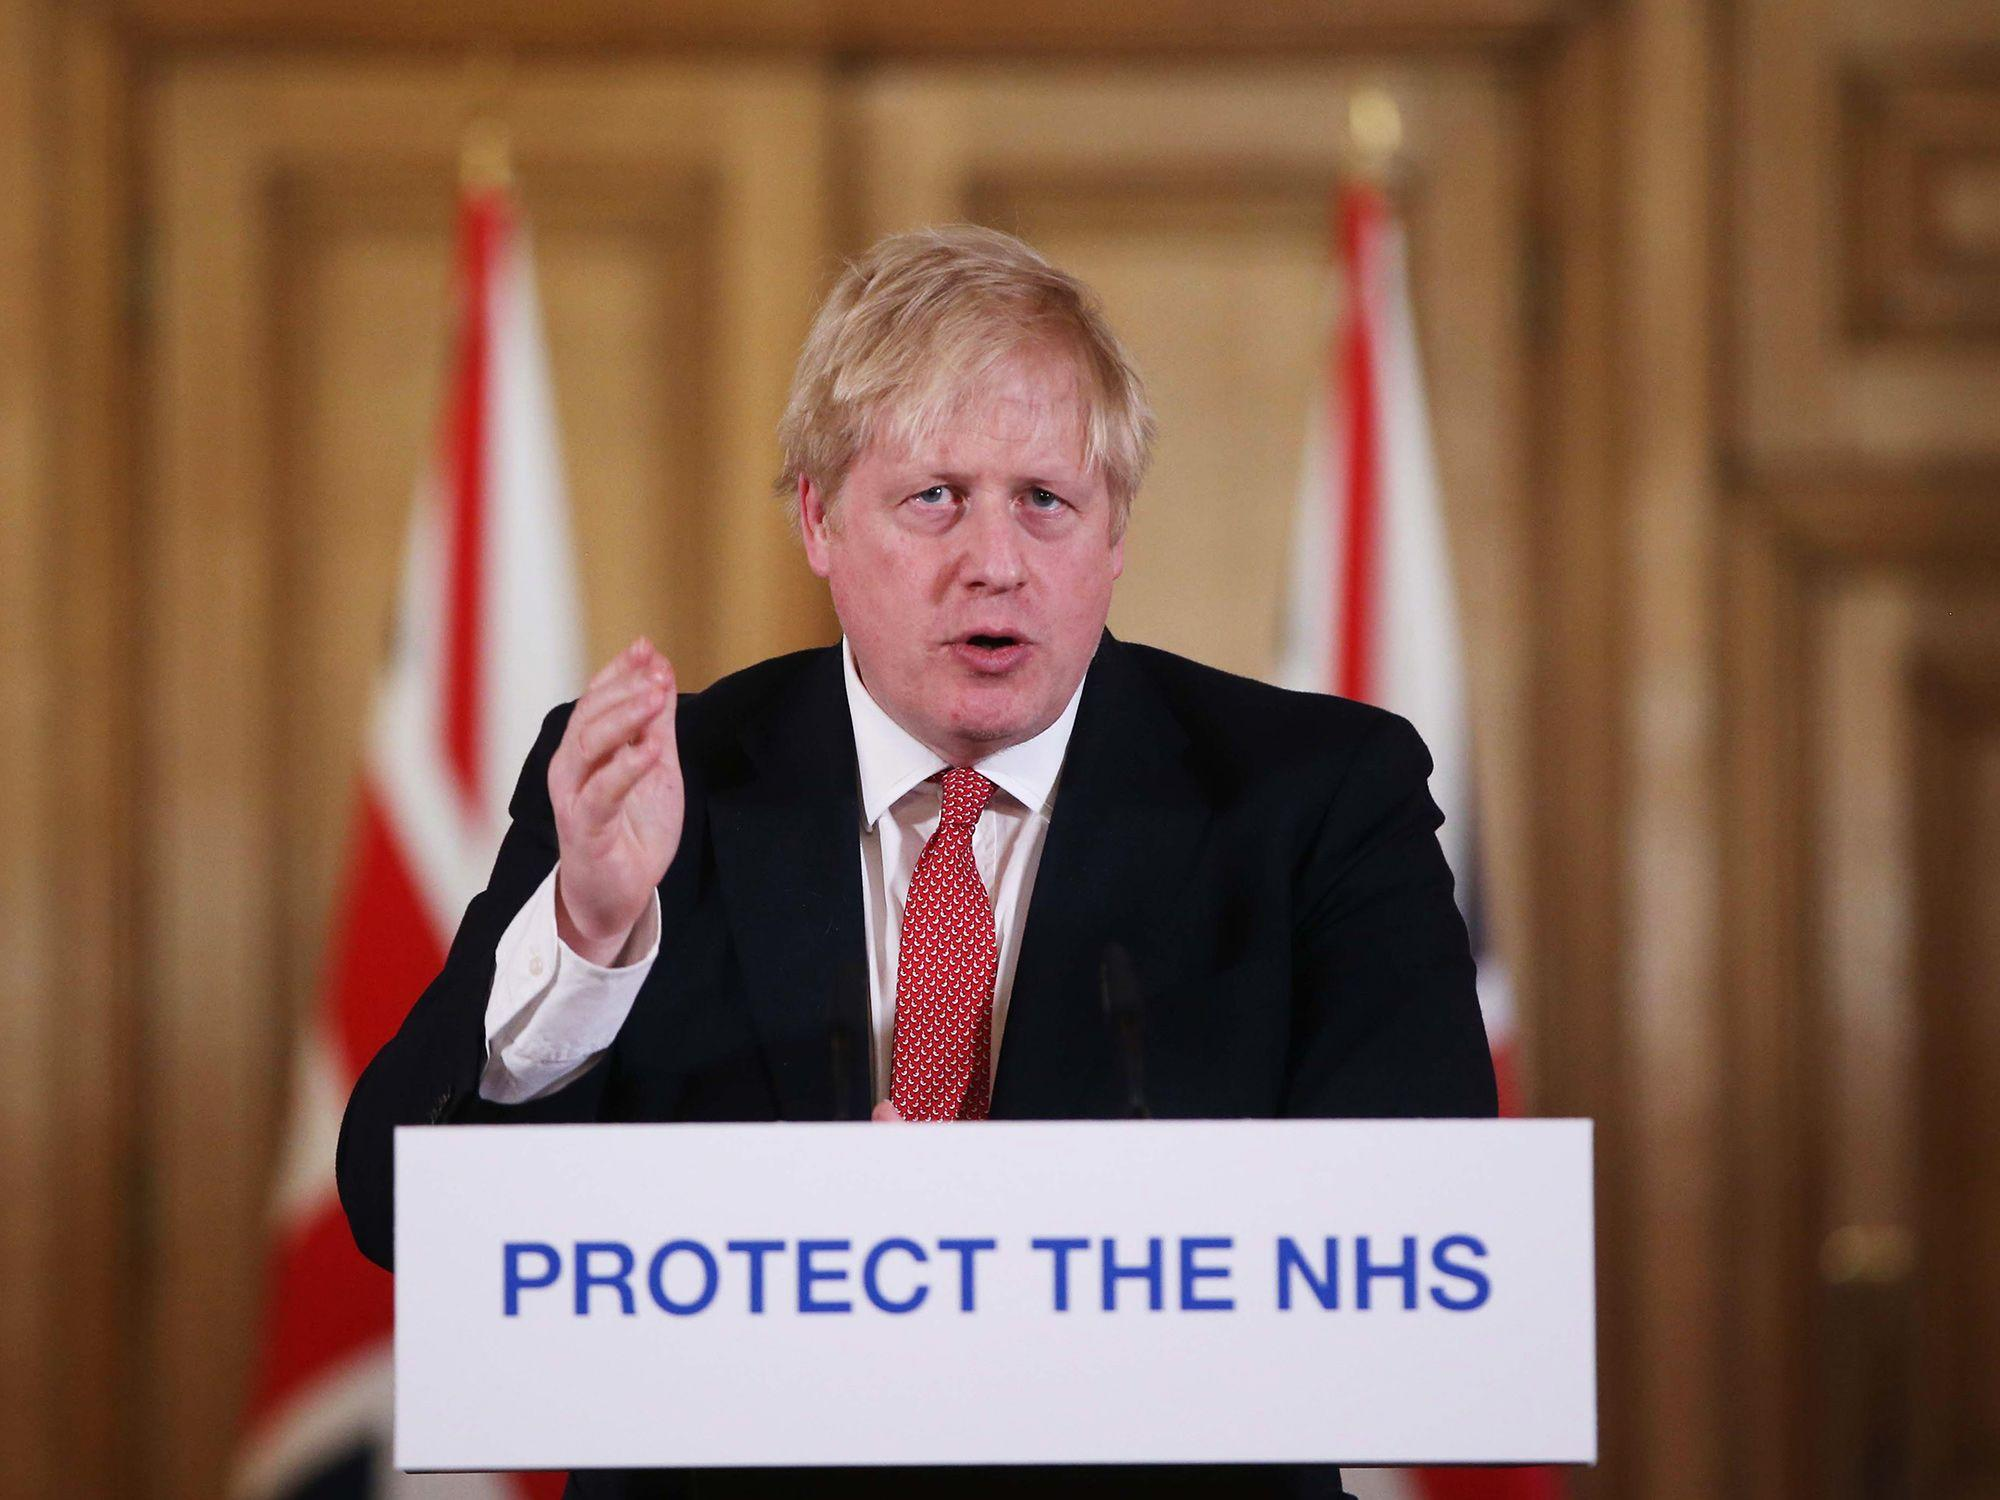 Boris Johnson returns to work, promising 'UK will emerge stronger'